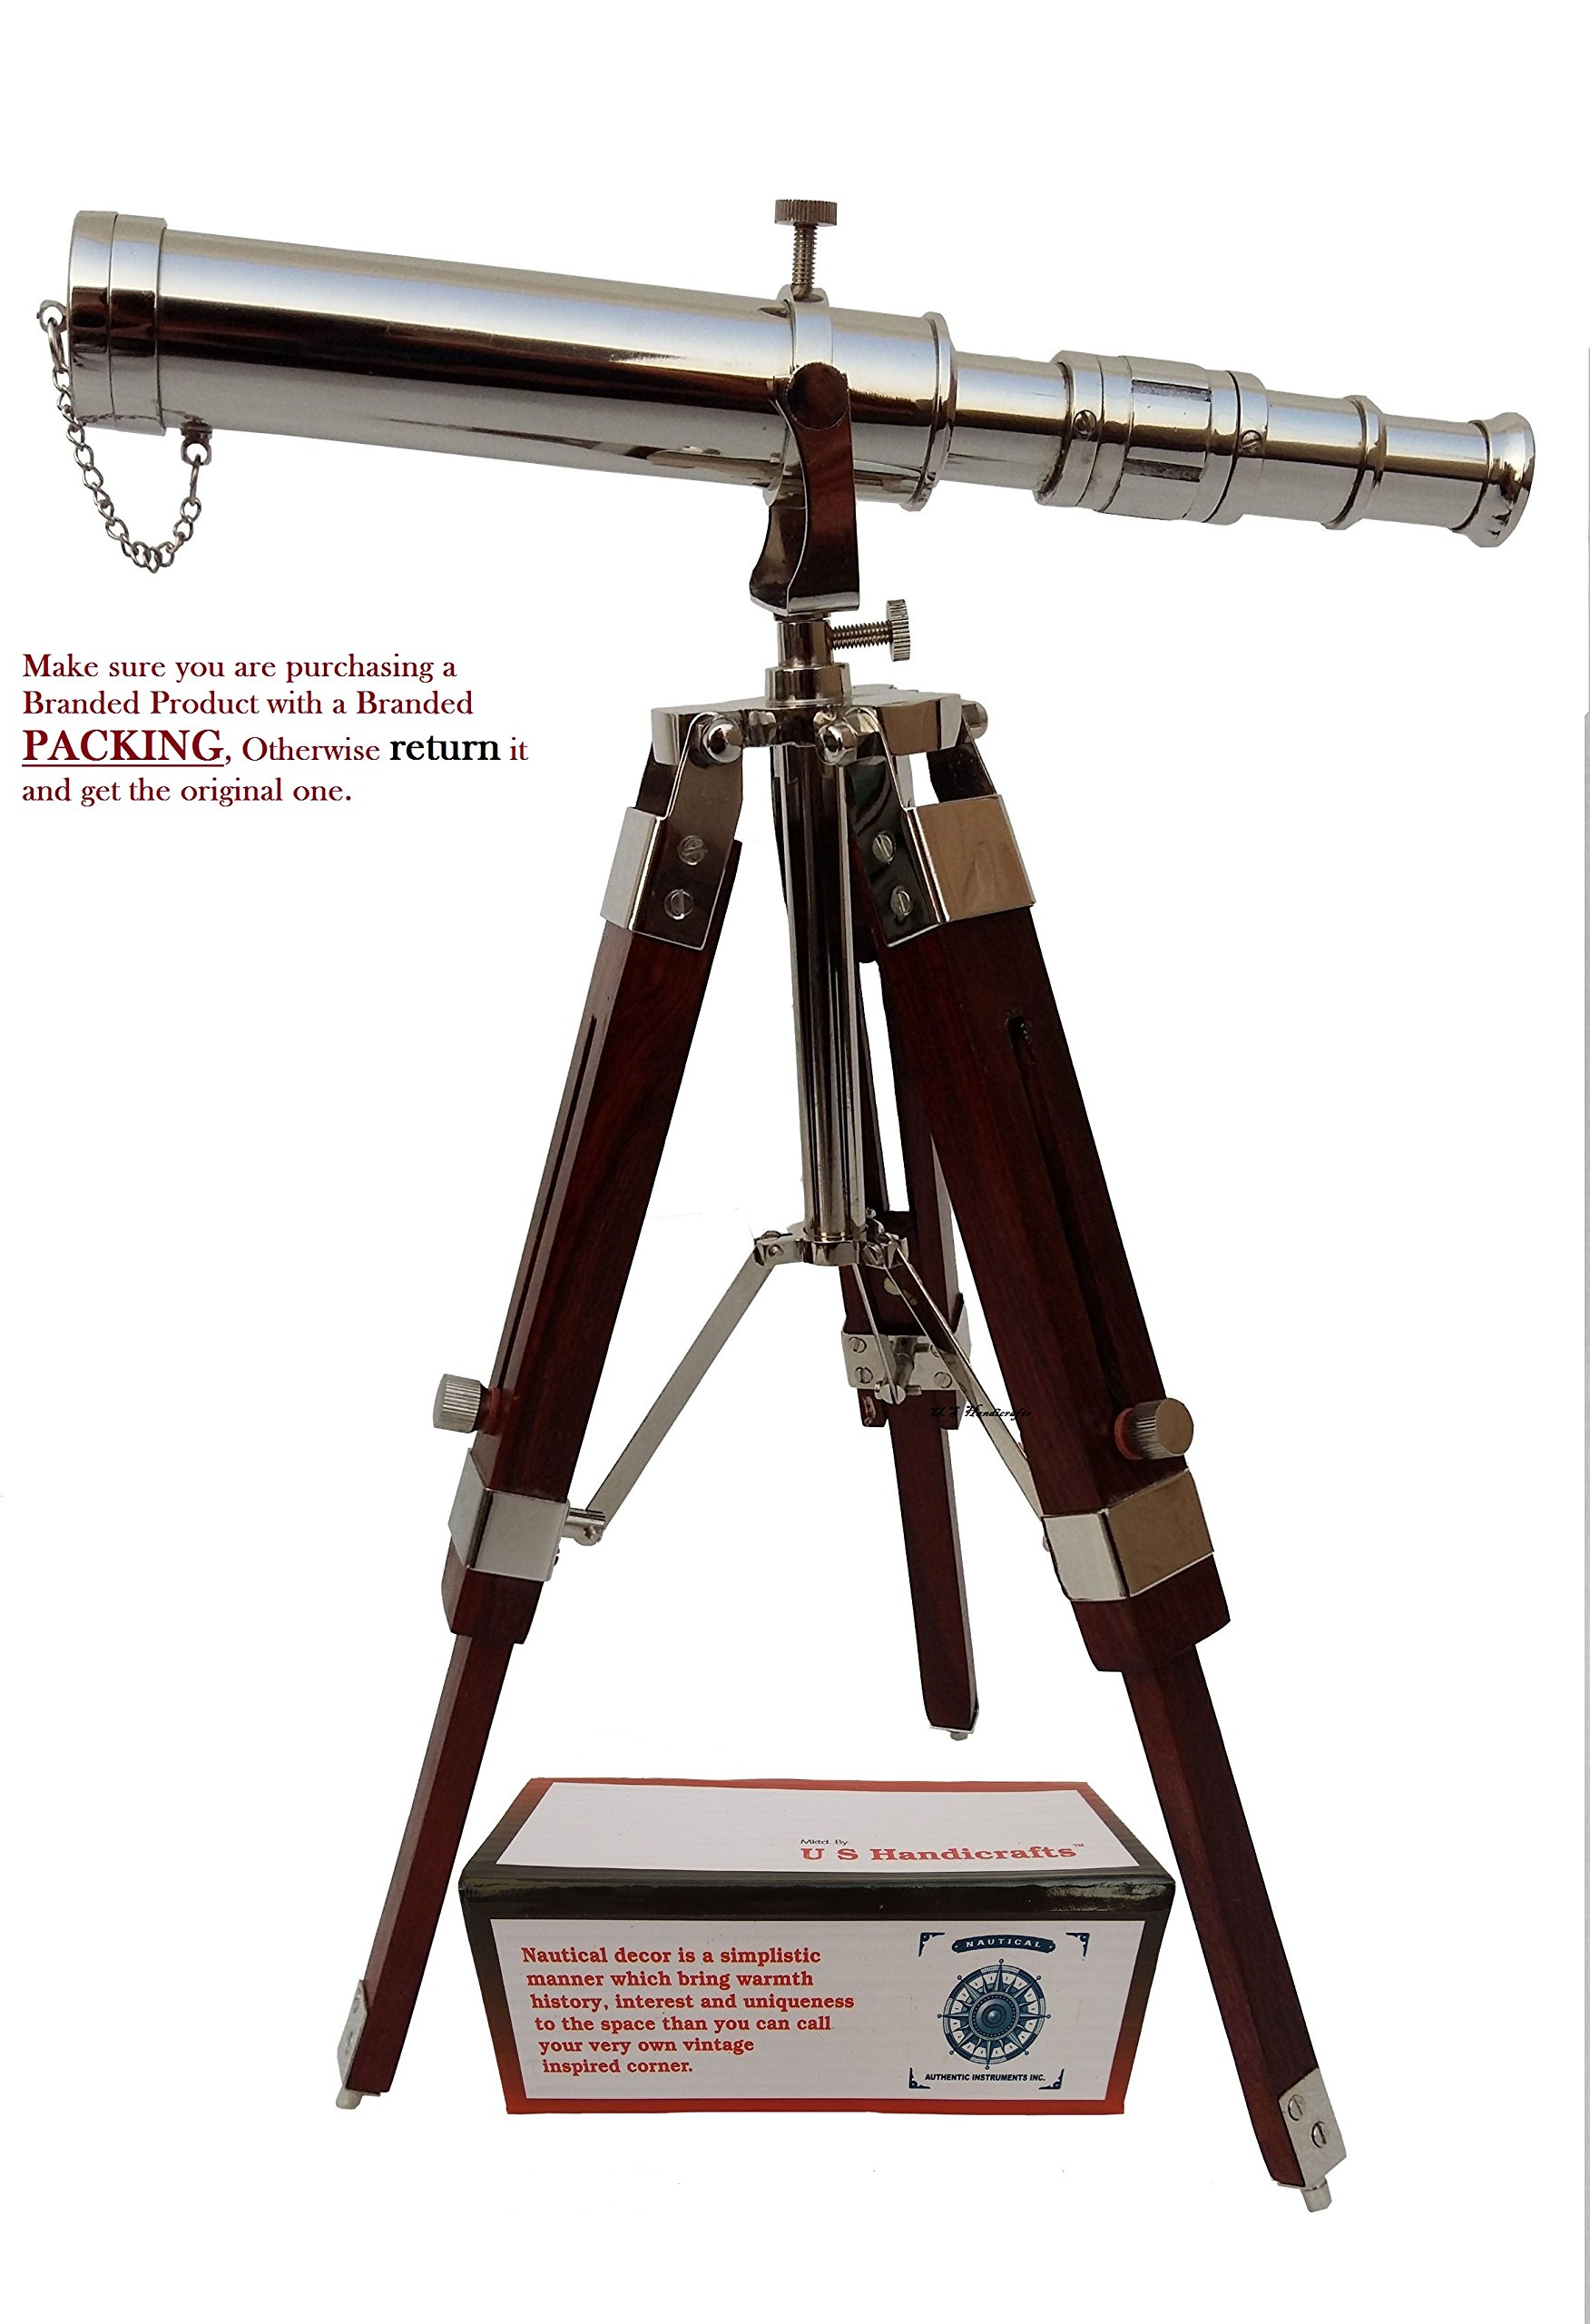 Vintage Brass NICKLE Telescope on Tripod Stand / Chrome Desktop Telescope for Home Decor & Table accessory Nautical Spyglass Telescope for Navy and Outdoor Adventures..............